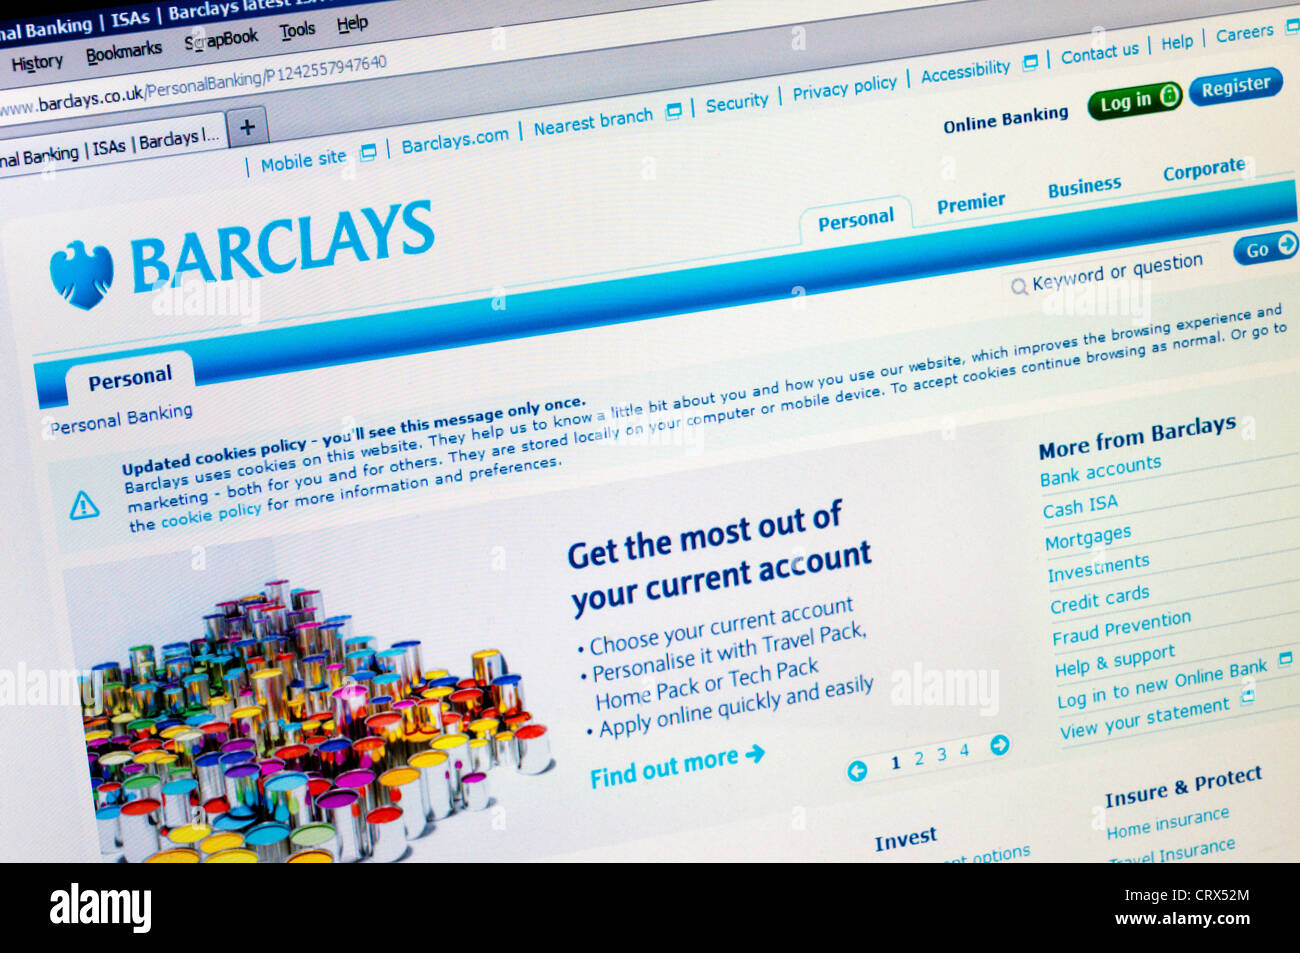 BARCLAYS ONLINE BUSINESS BANKING USING PINSENTRY - Barclays